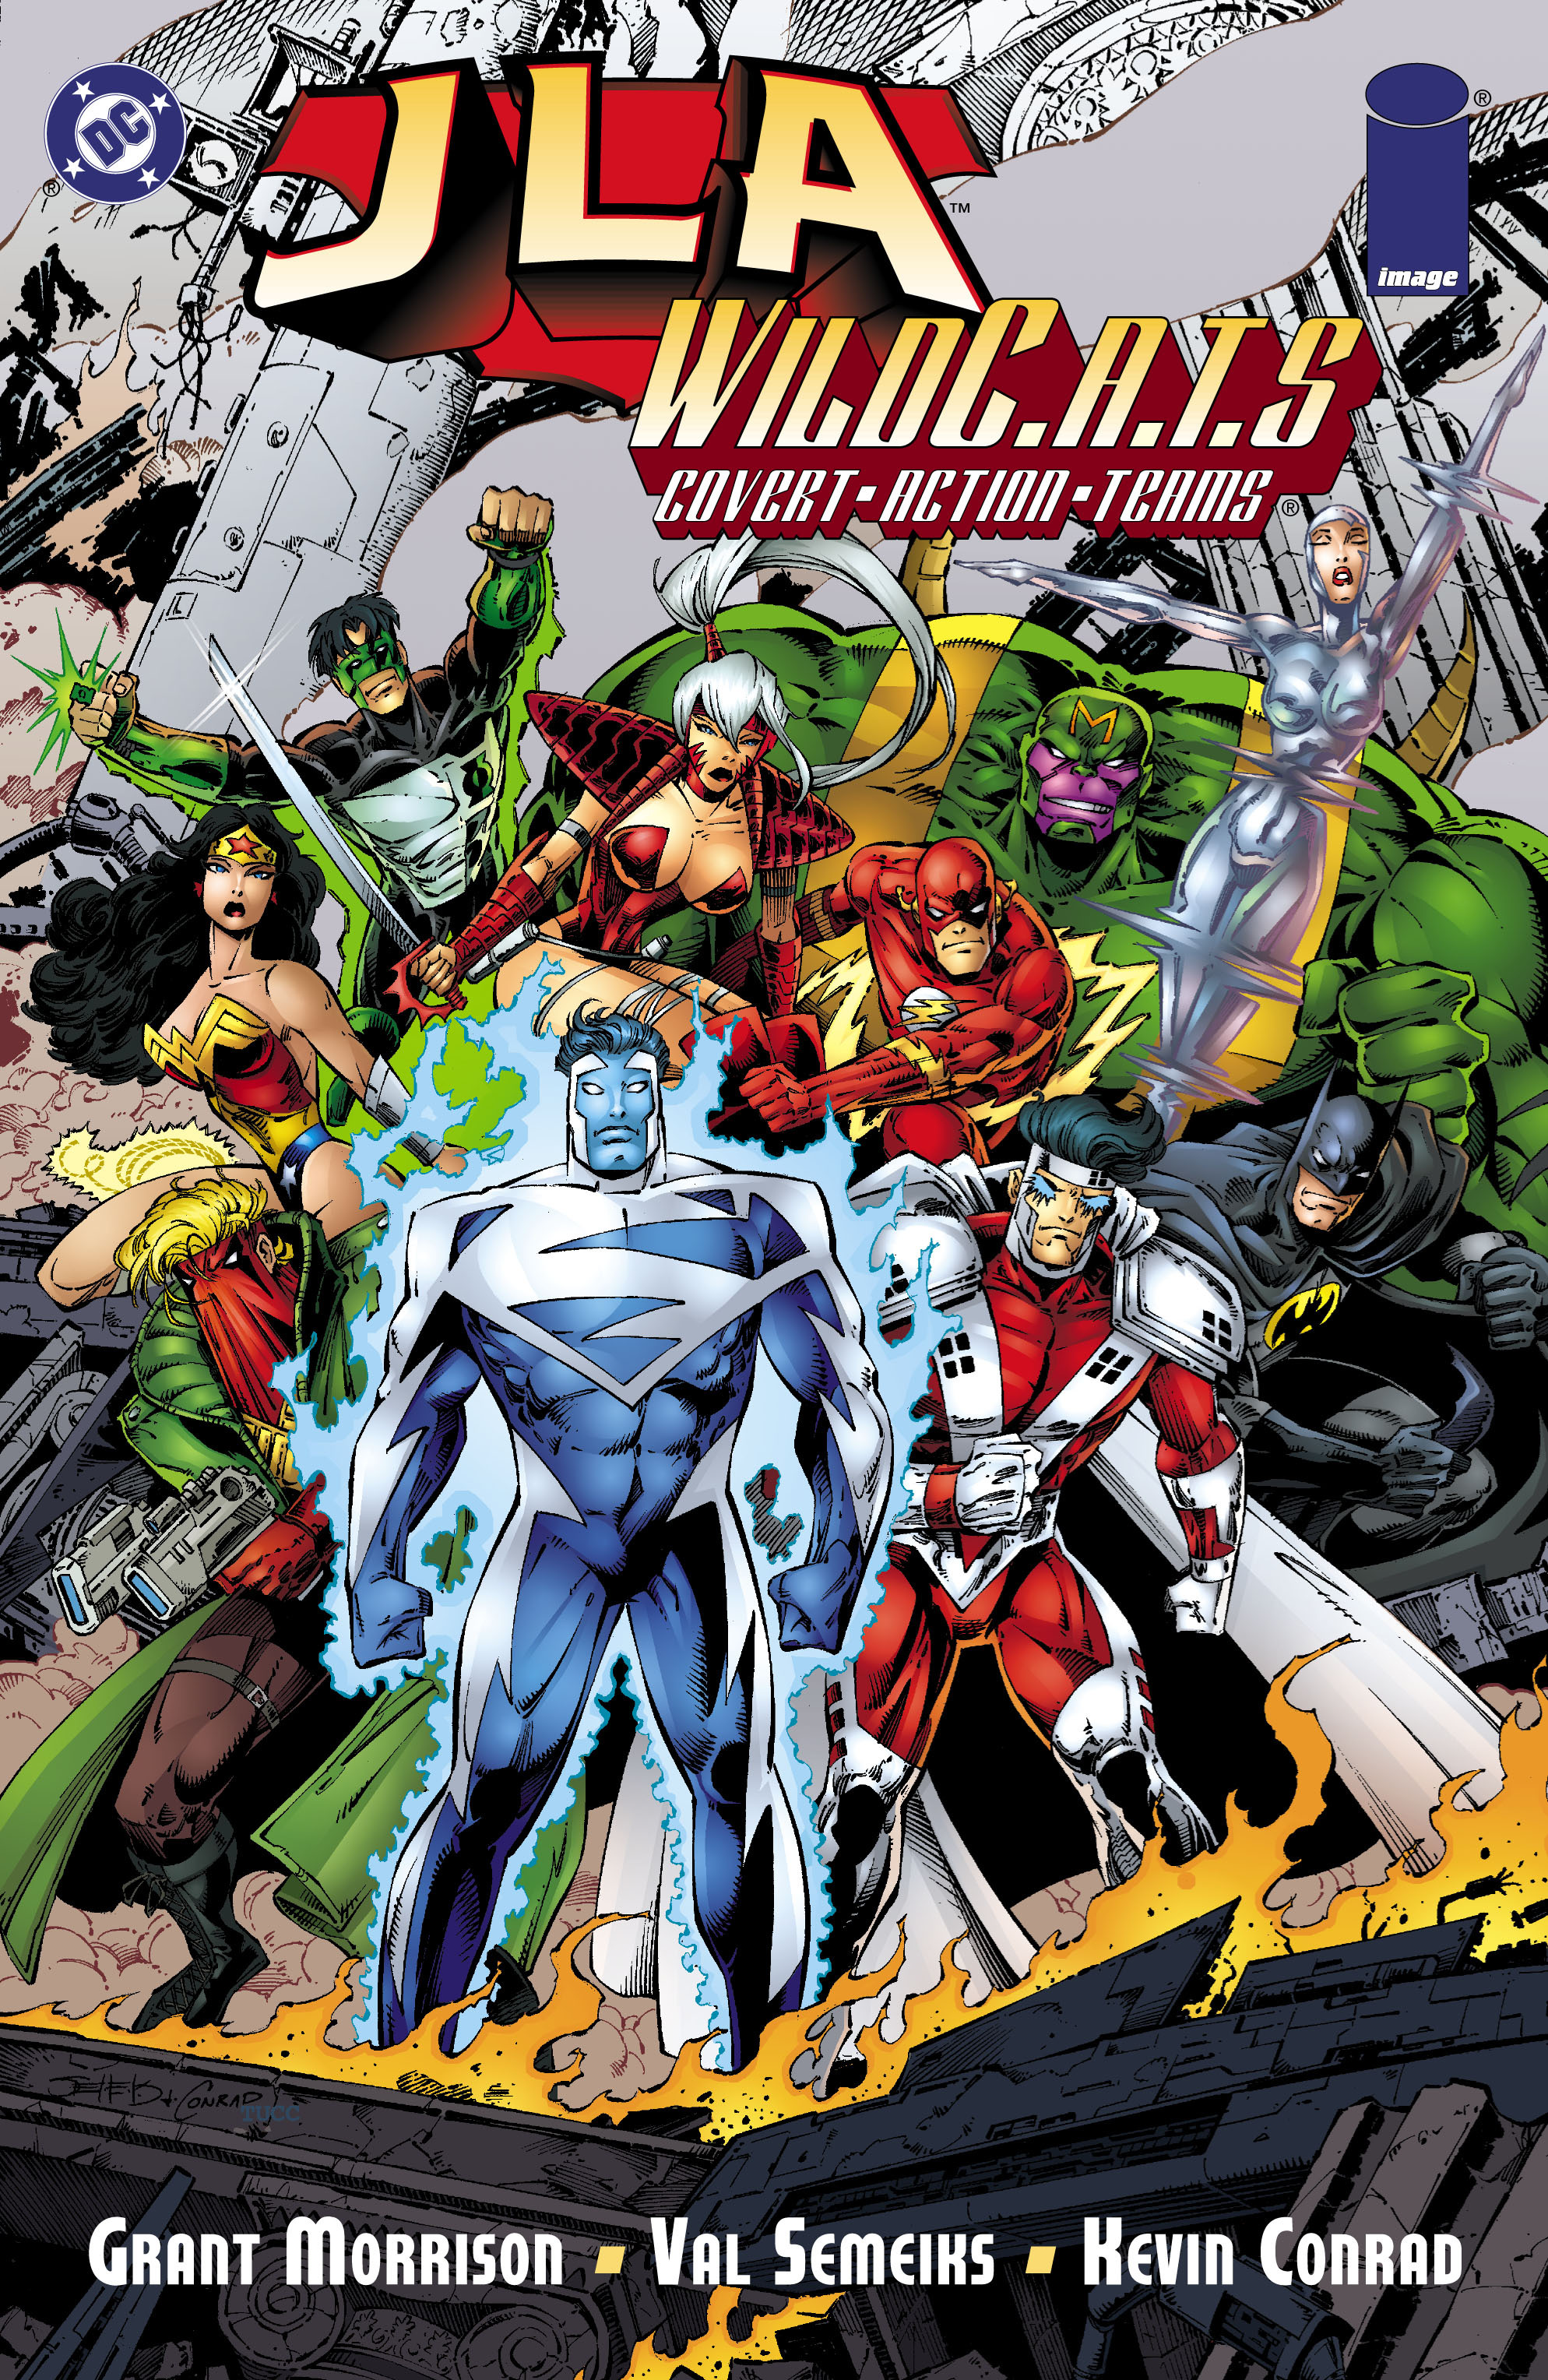 Read online JLA/WildC.A.T.s comic -  Issue # Full - 1